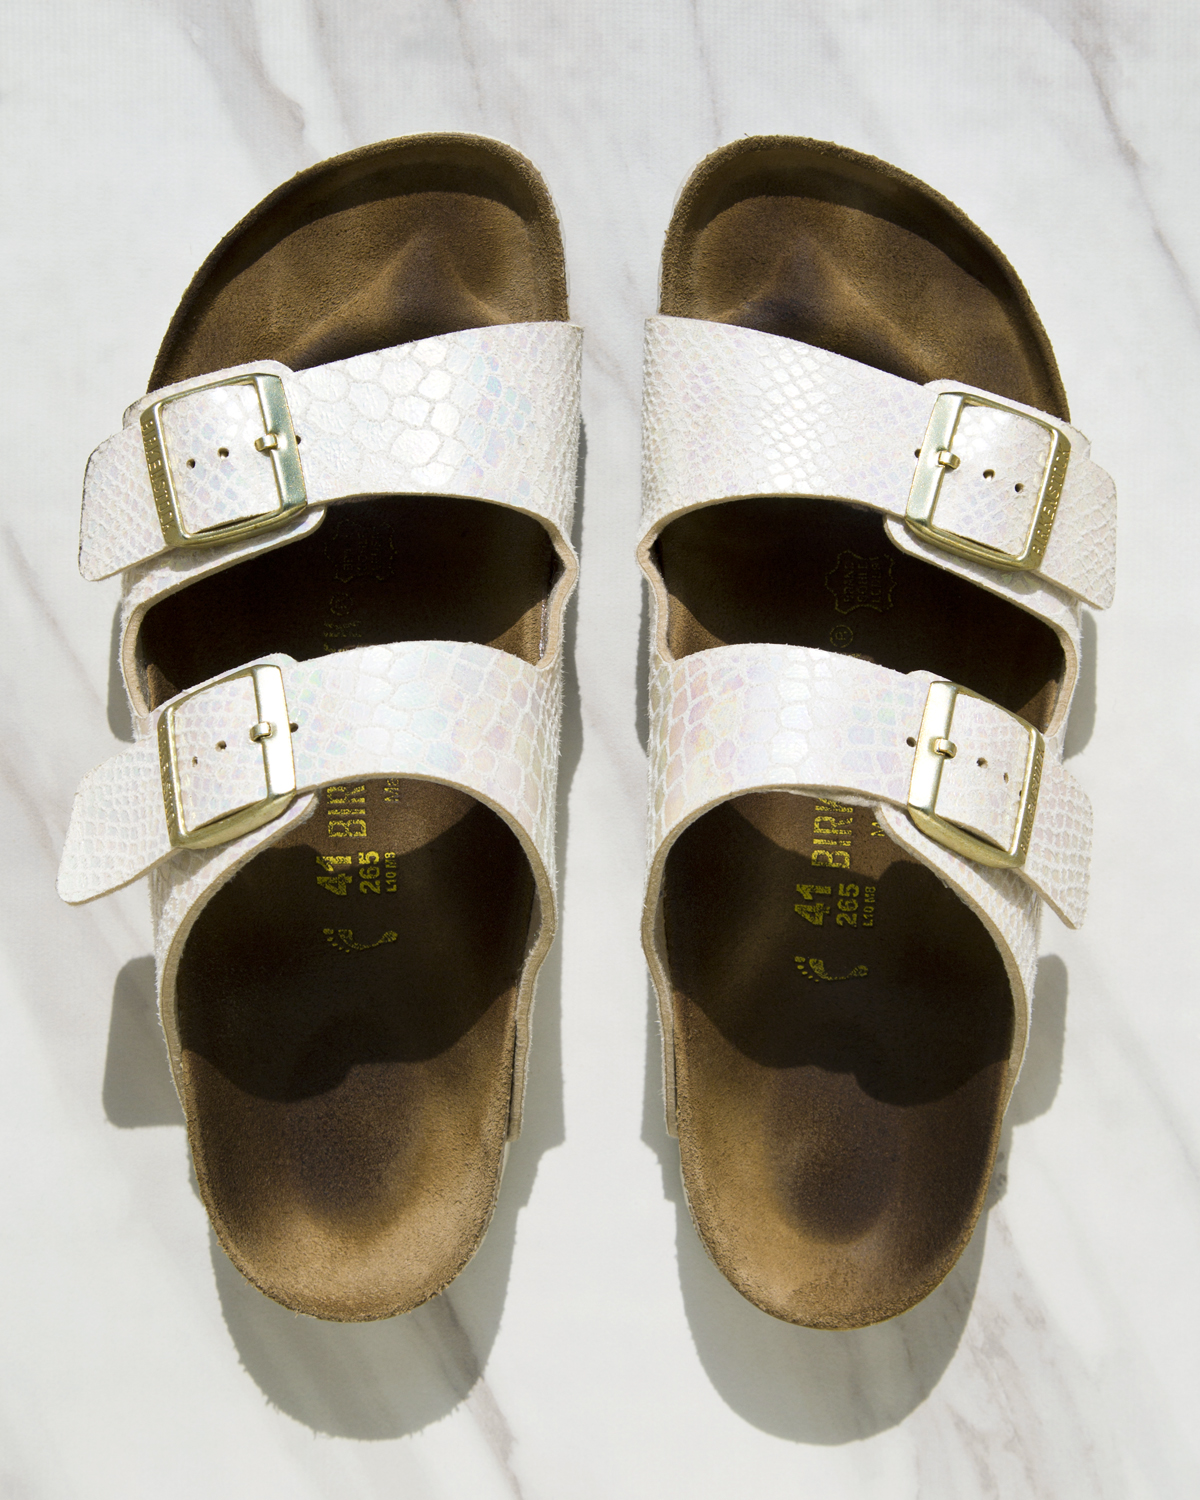 89fd81f3e0b0 Shoes of the Summer — Heather A. Turner